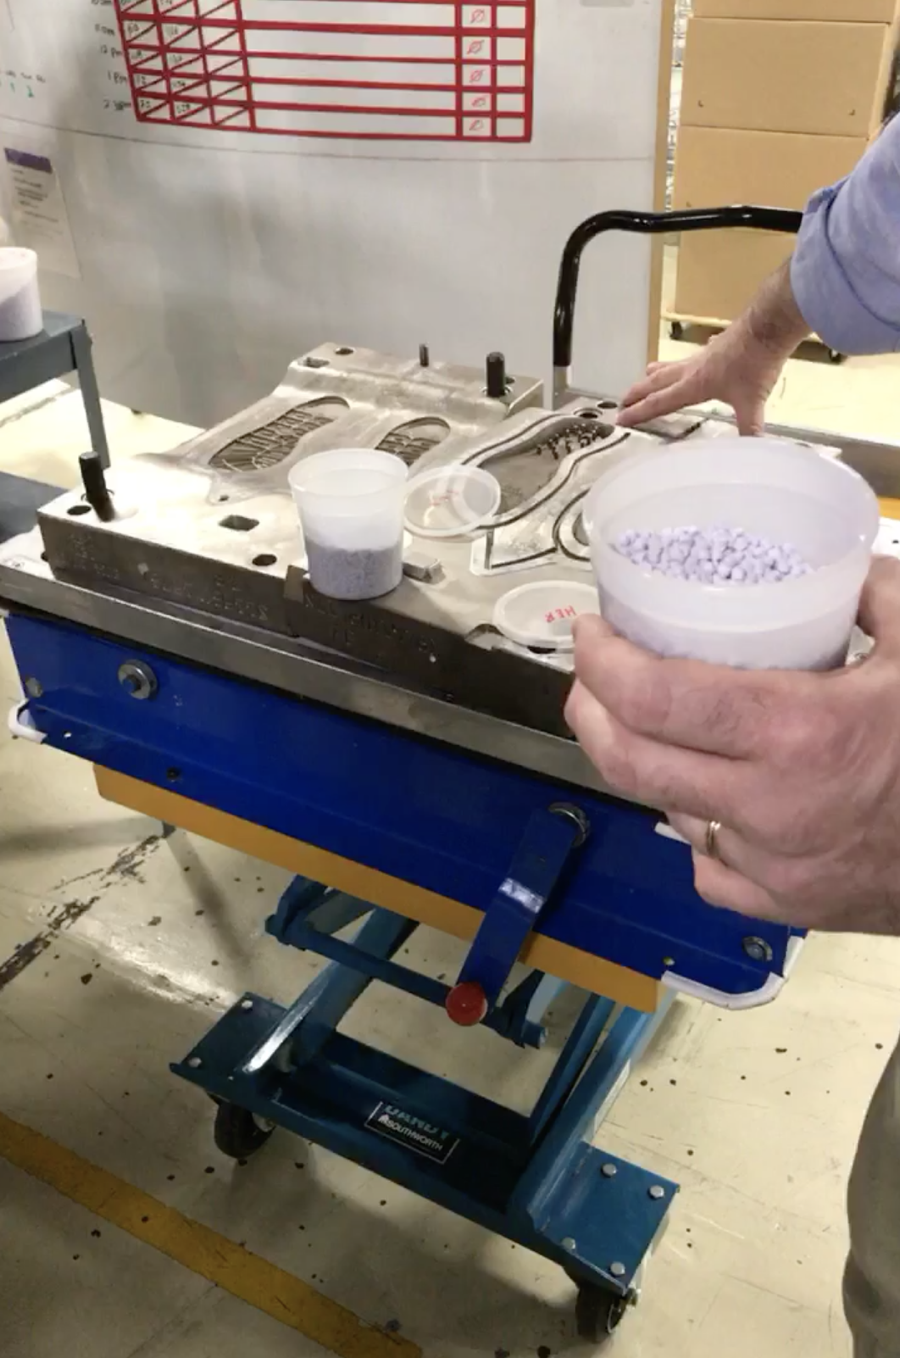 Screen Shot 2017-03-12 at 2.13.47 PM